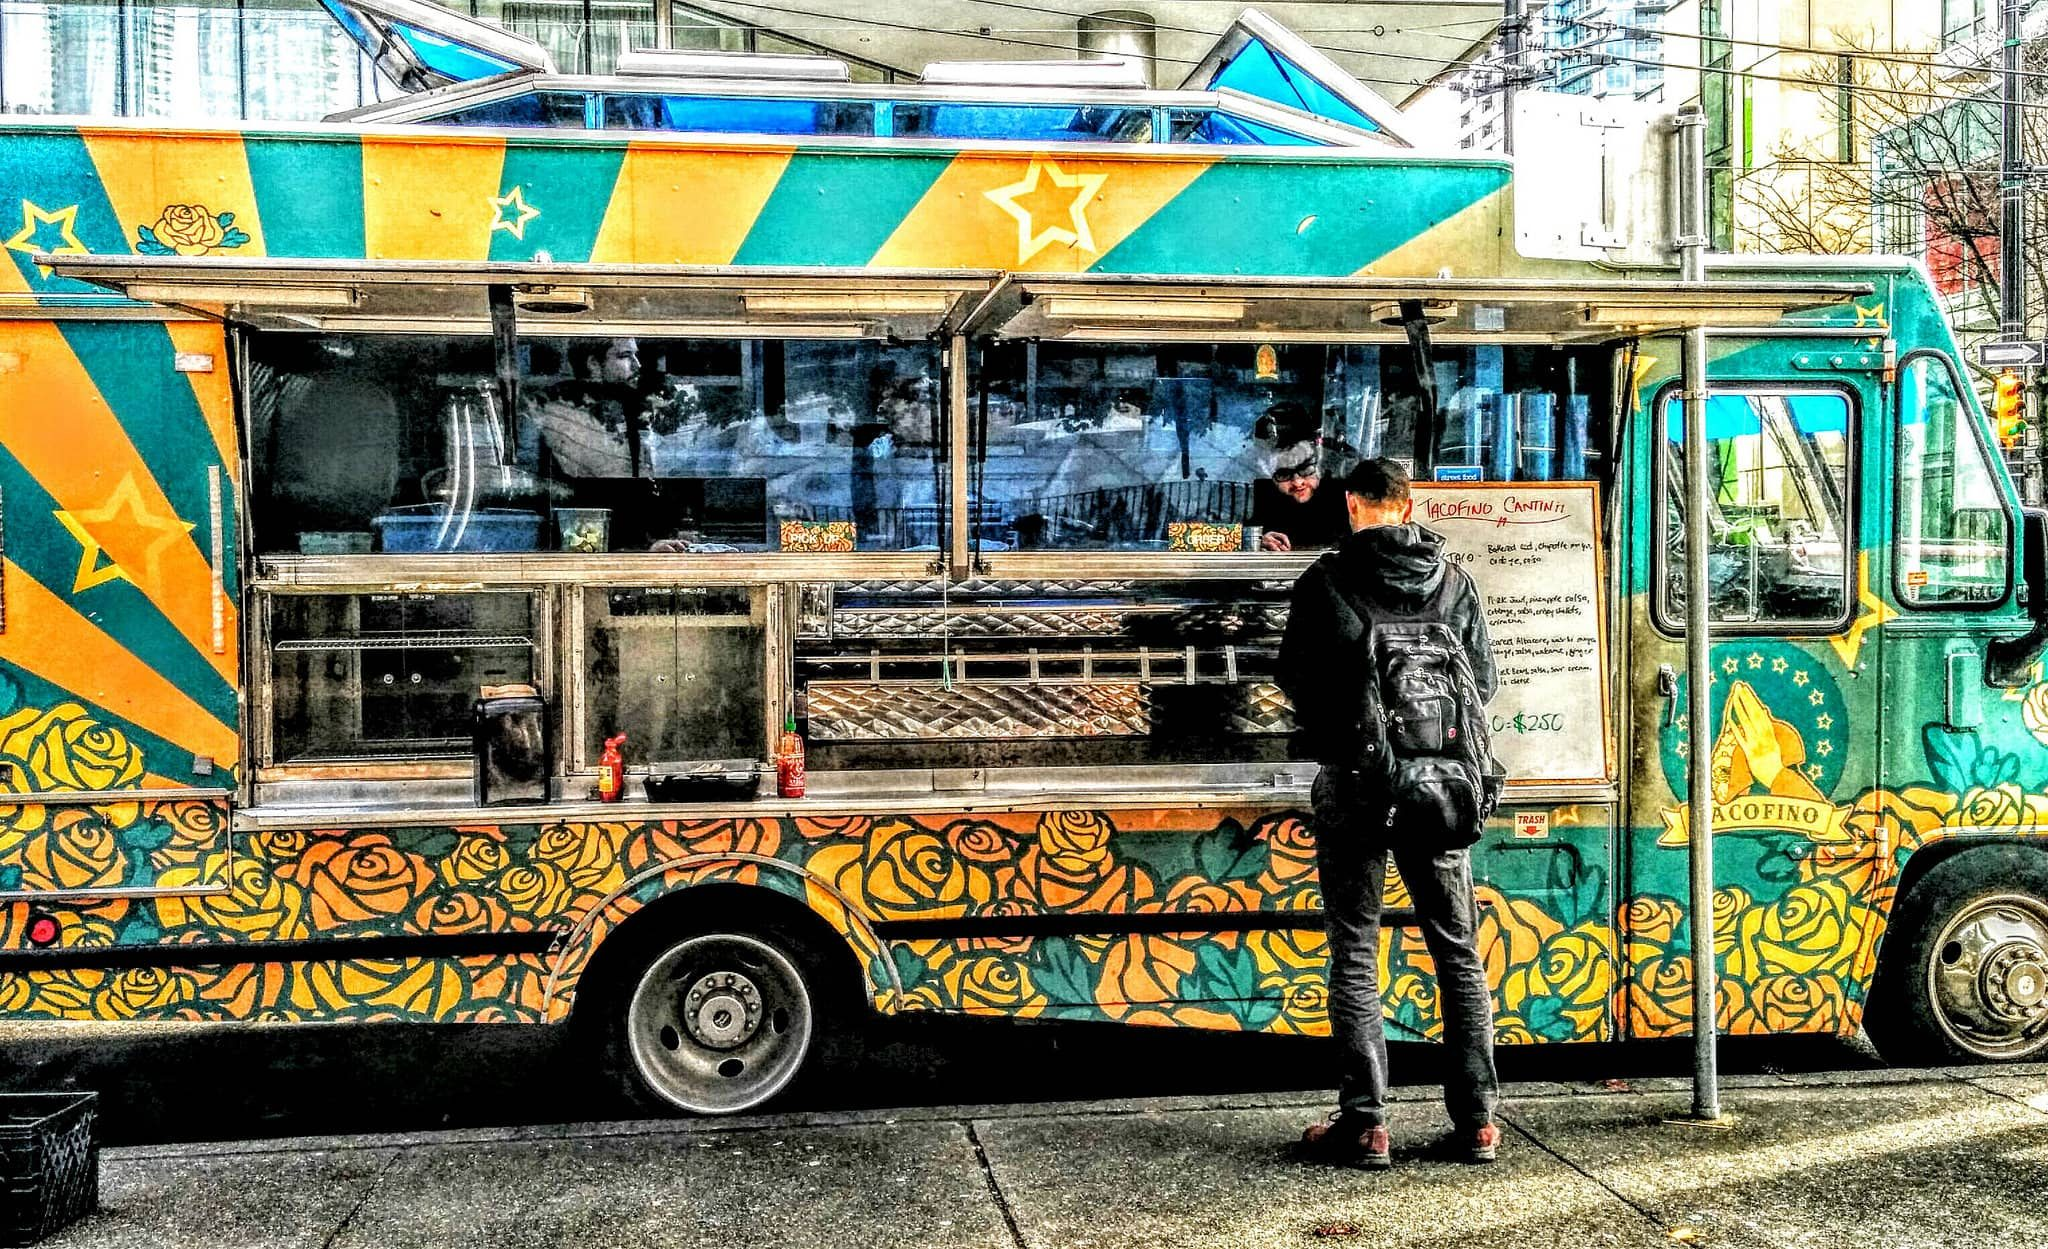 The Greater Vancouver Food Truck Festival Coming To Coquitlam